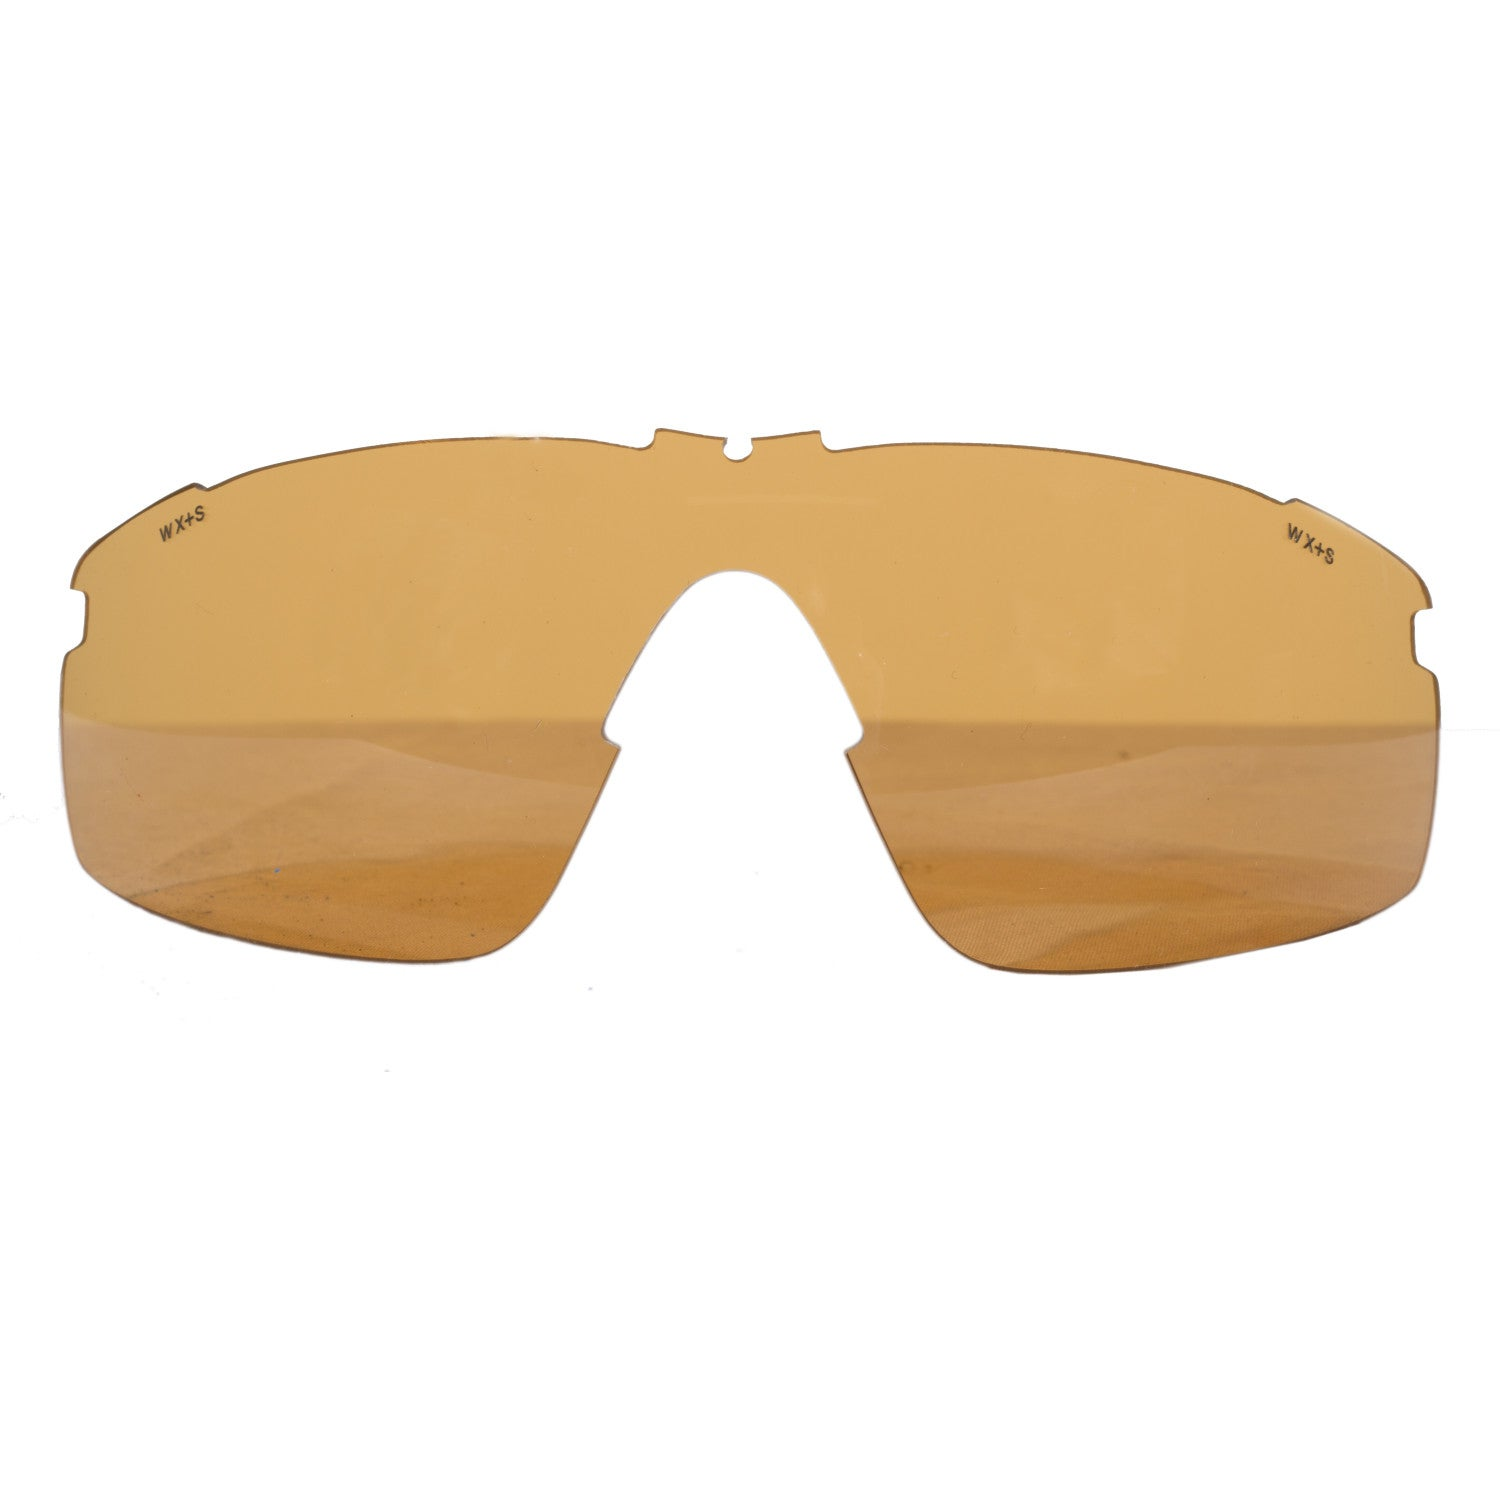 5.11 Tactical Replacement Lens for Raid Sunglasses